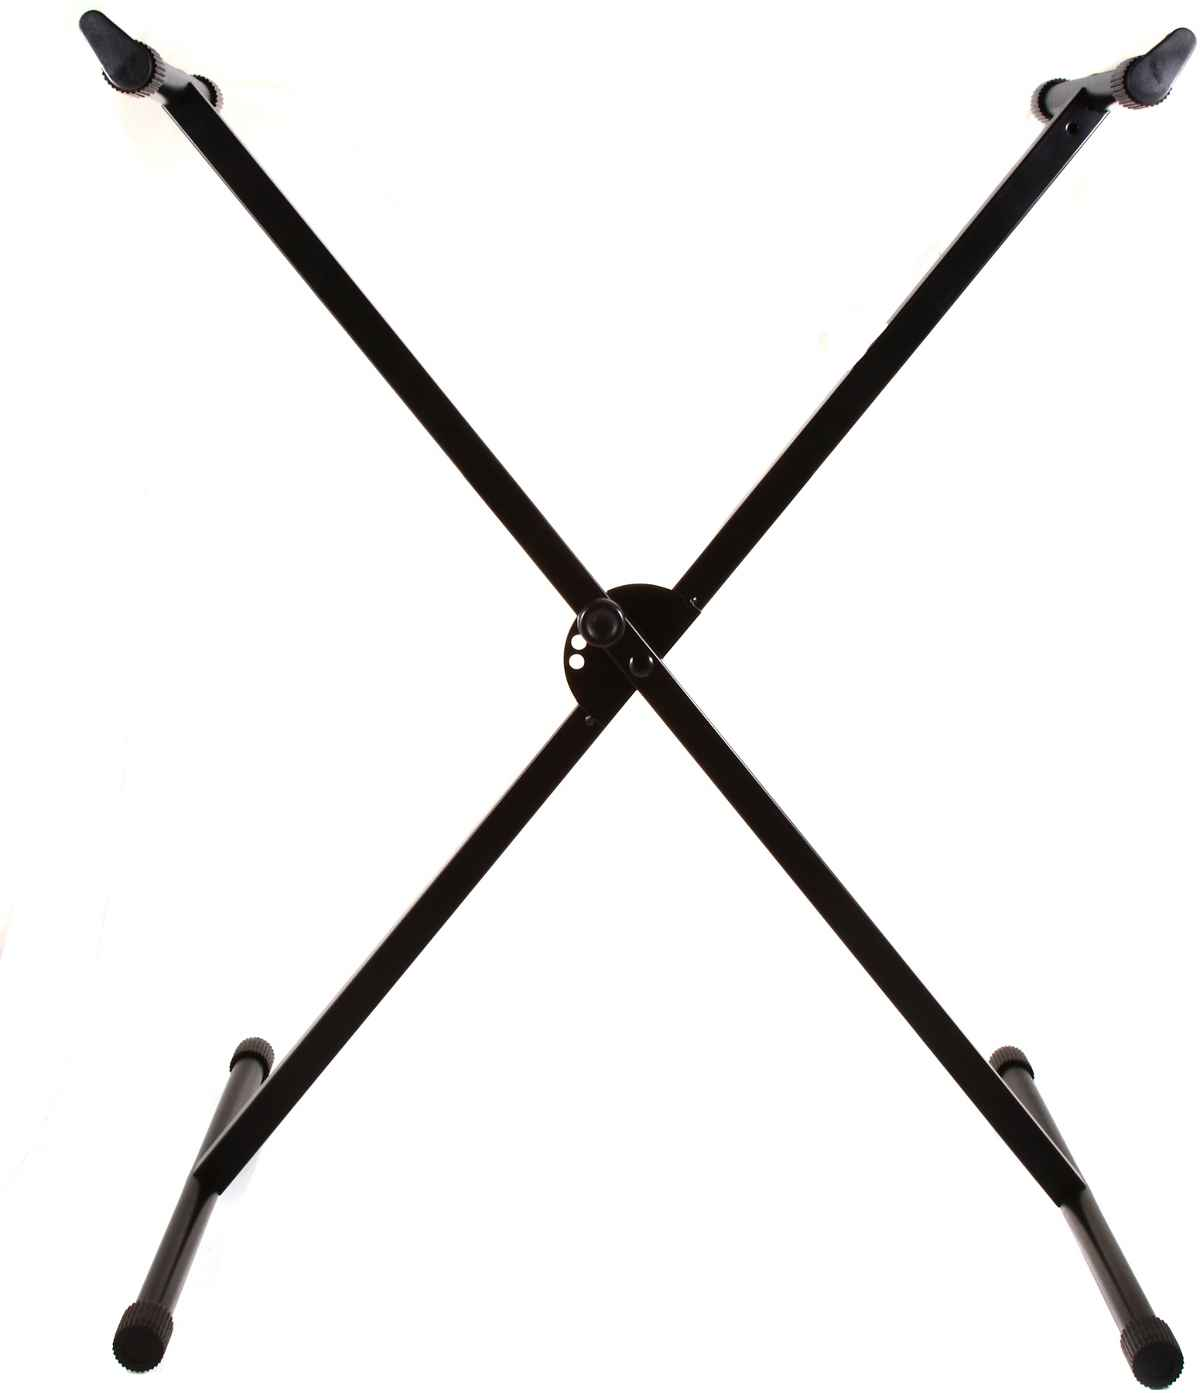 X shape black adjustable keyboard stand